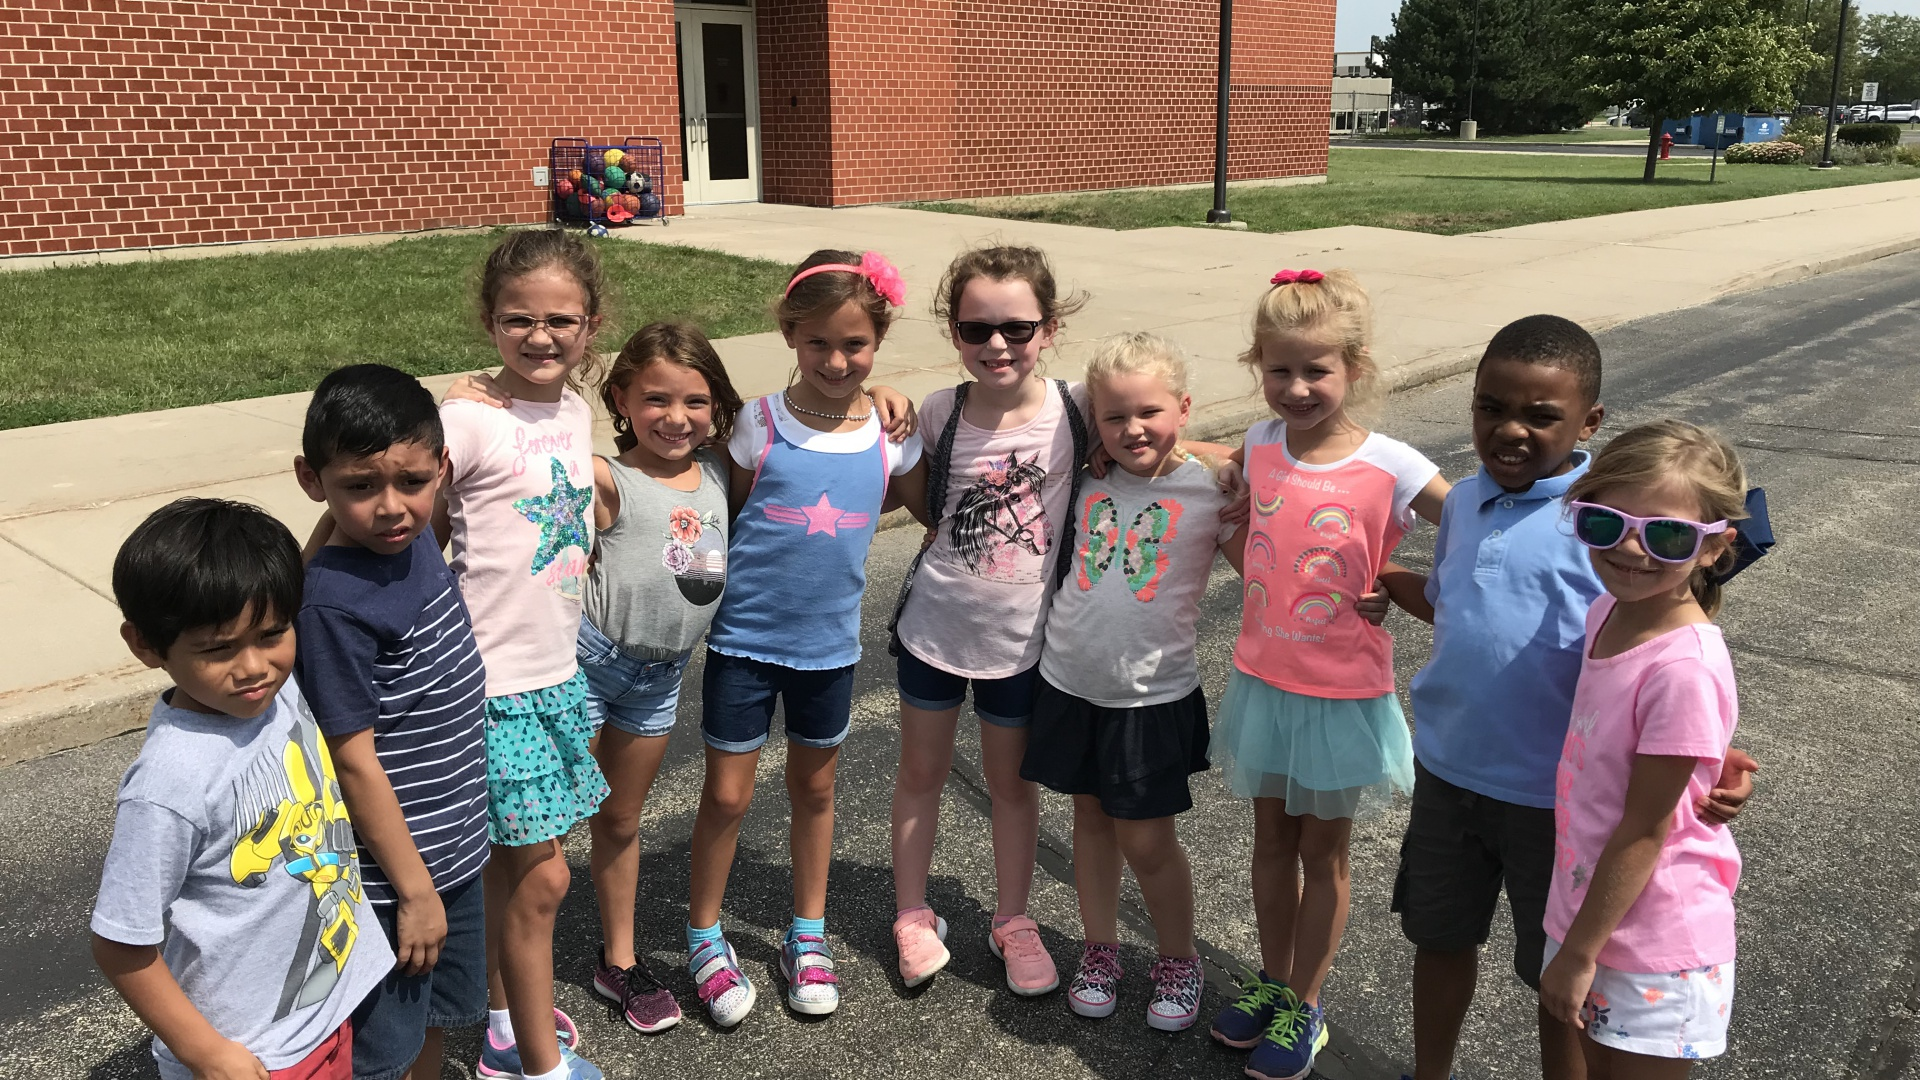 First grade students enjoying recess